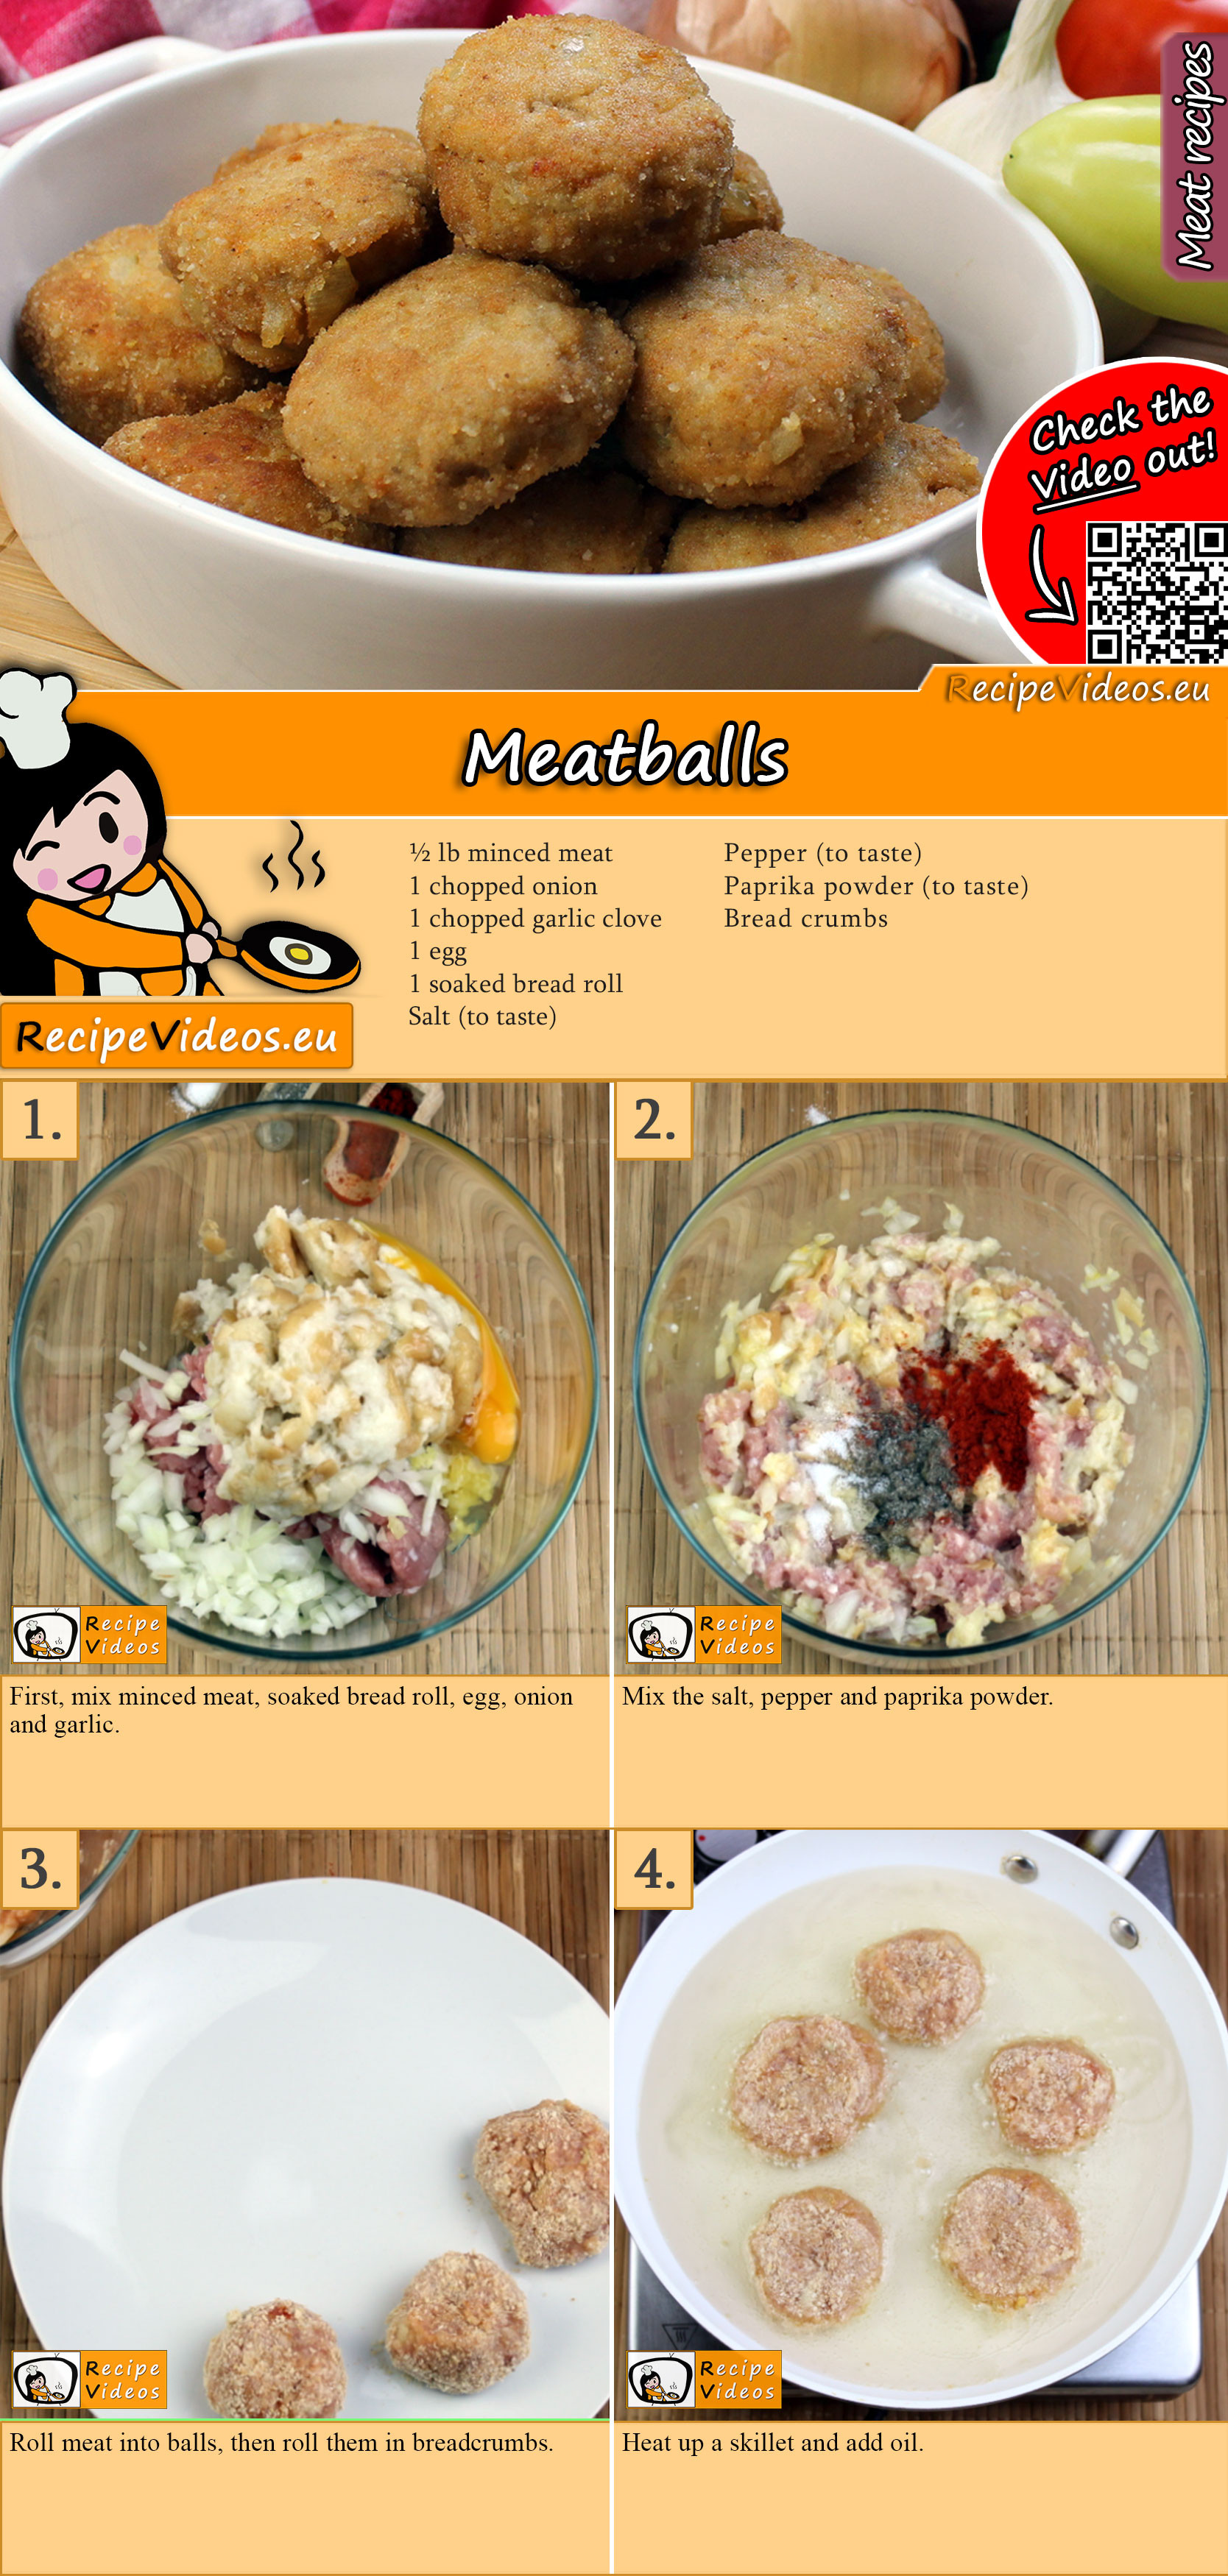 Meatballs recipe with video